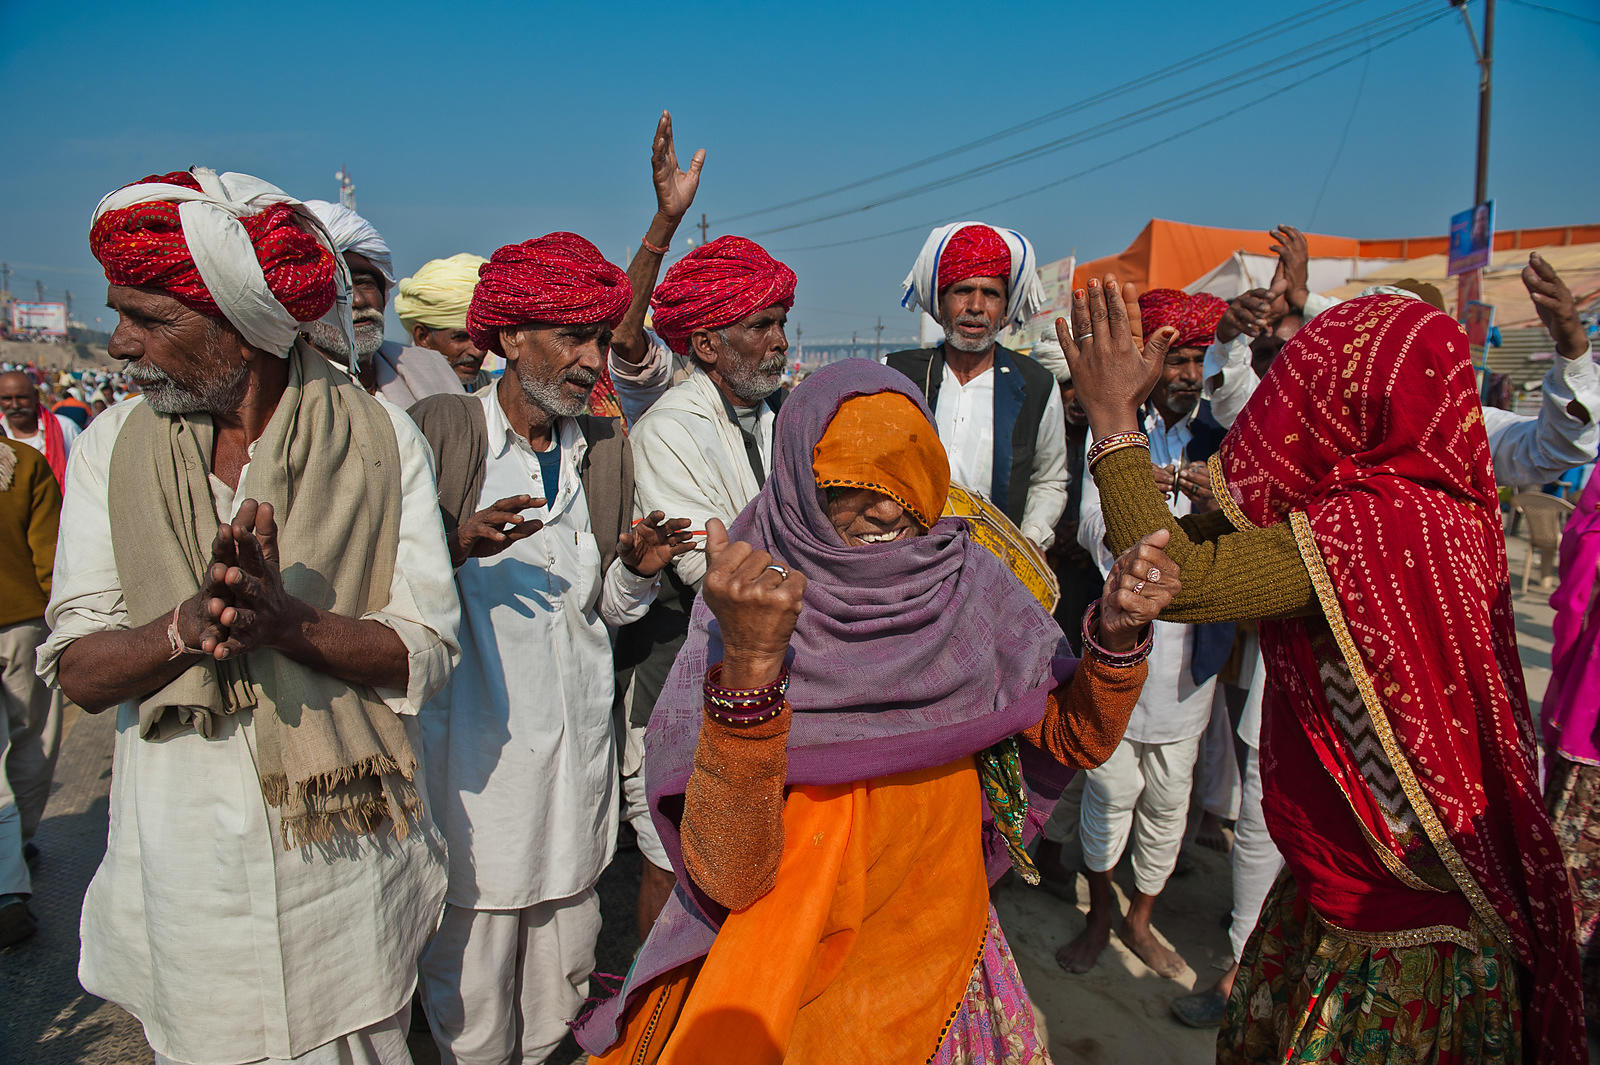 This photograph of the pilgrims dancing and celebrating was shot at the Kumbh Mela in Allahabad